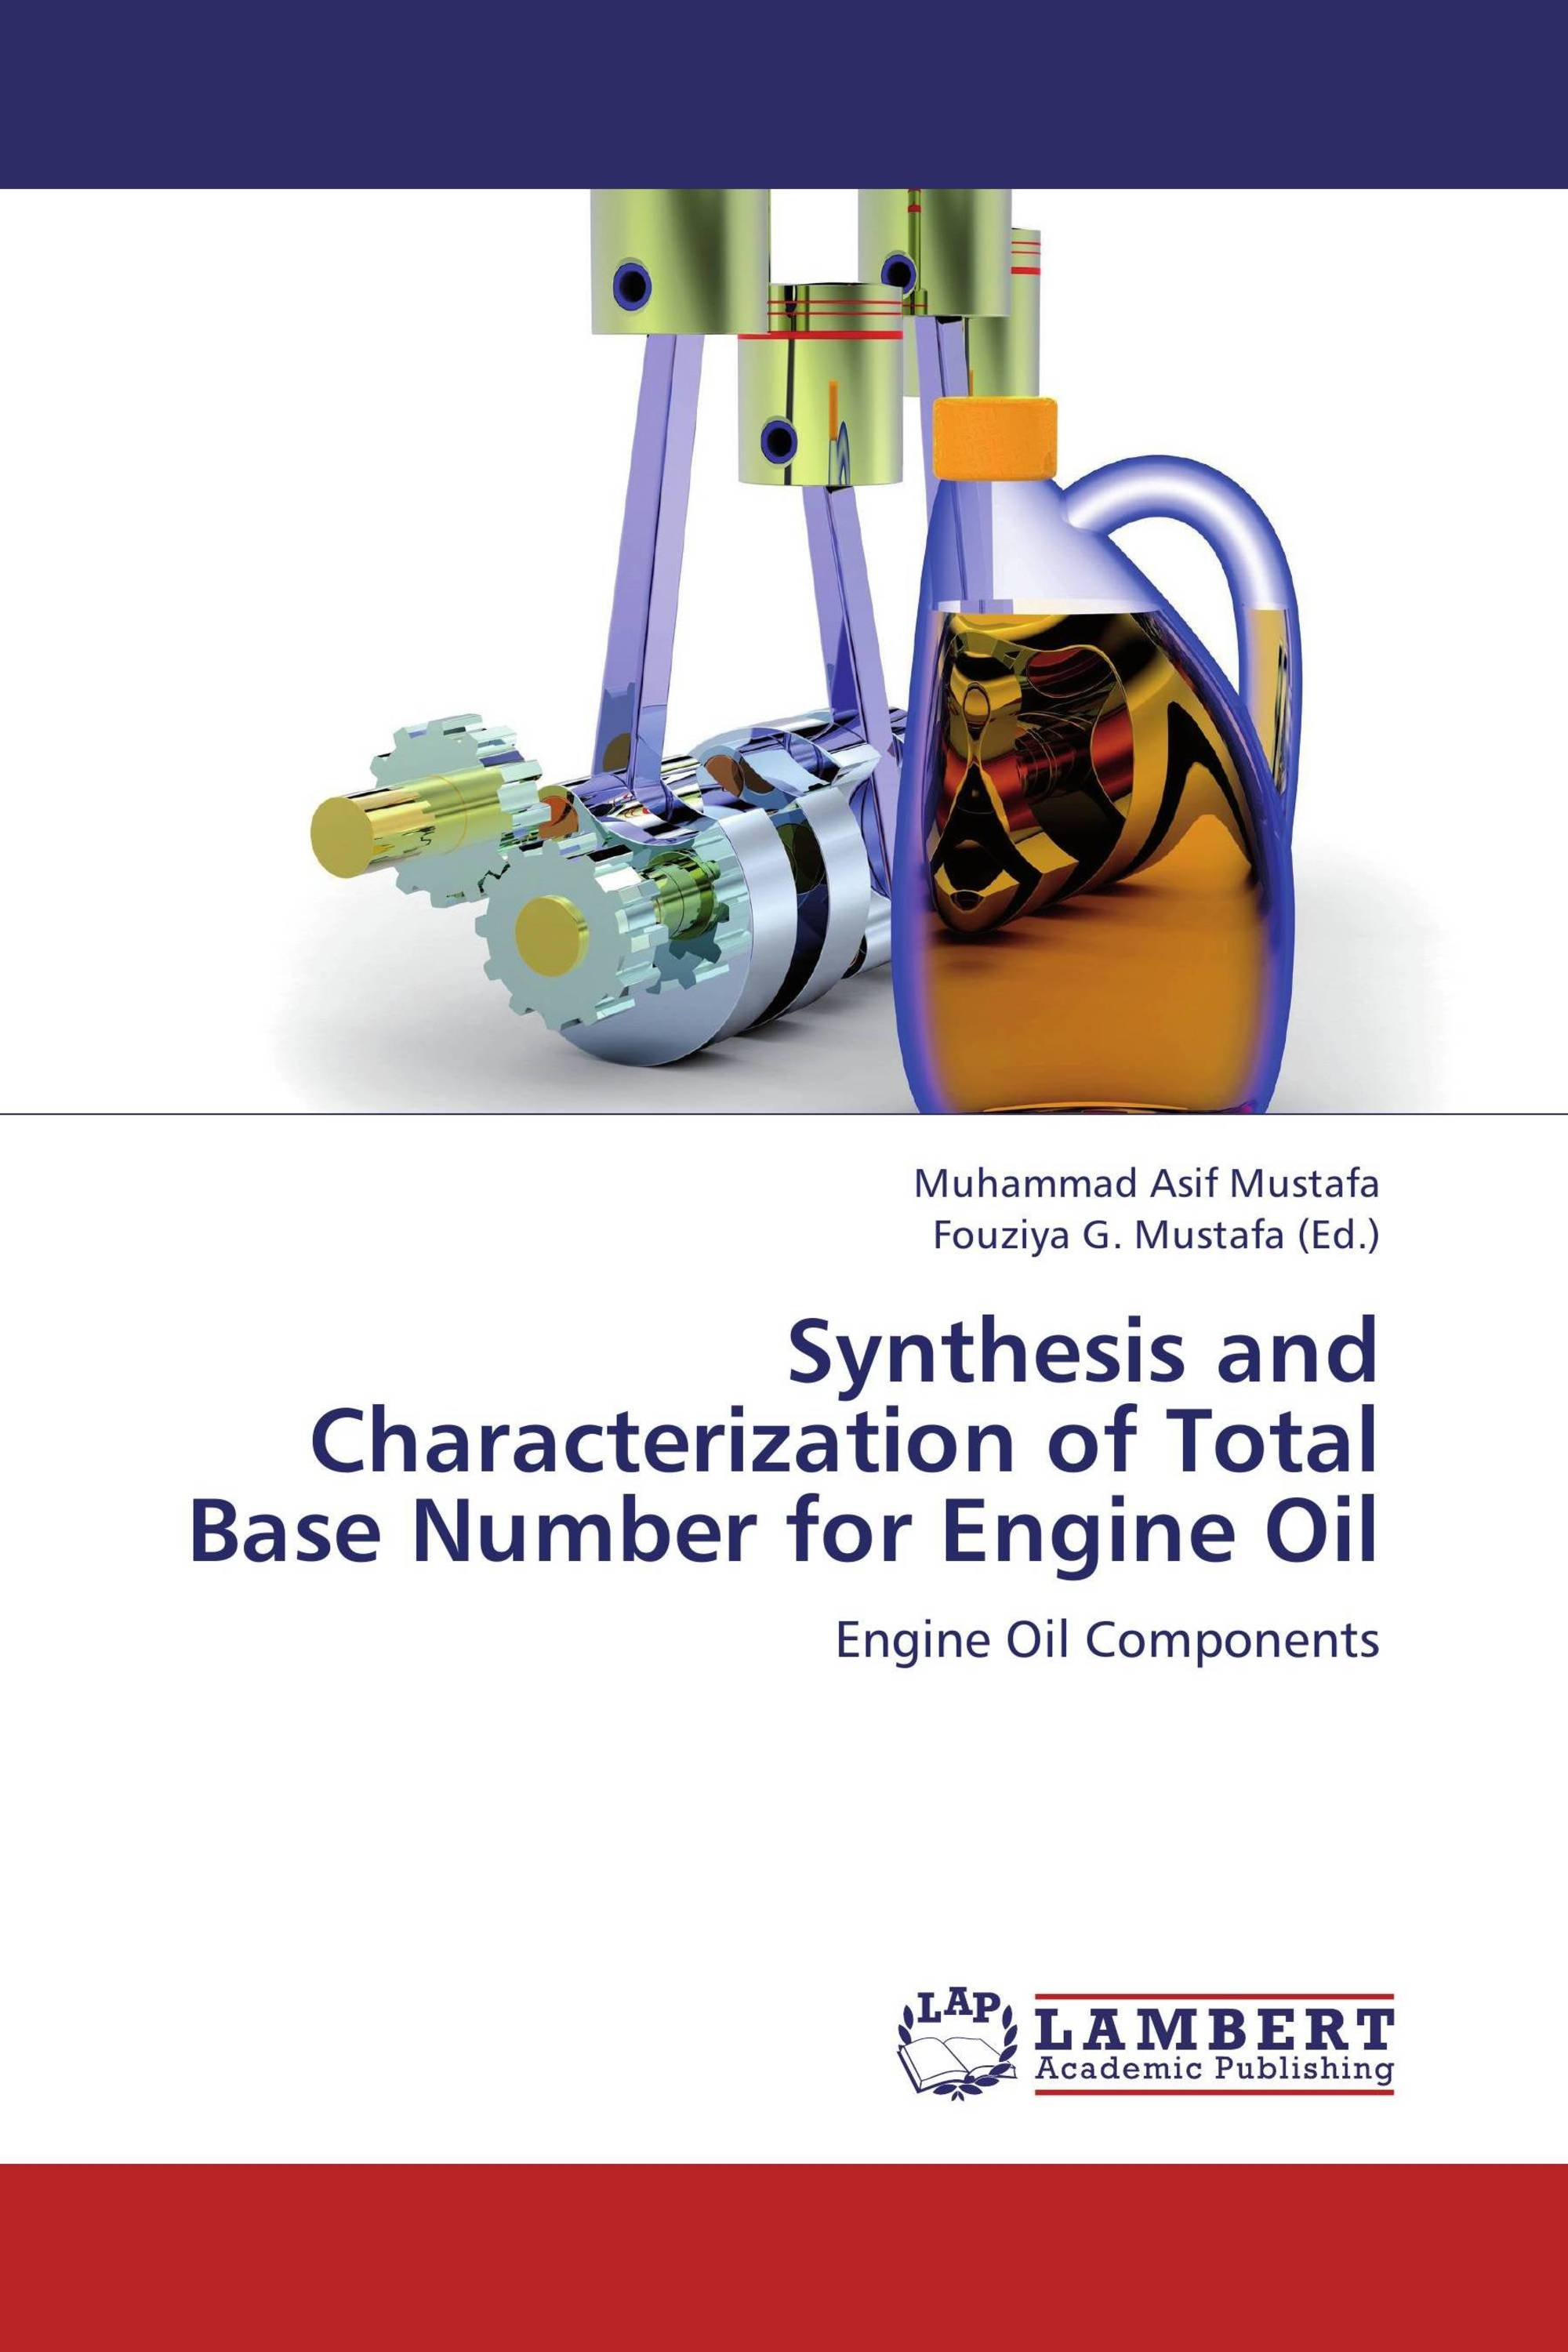 Synthesis and Characterization of Total Base Number for Engine Oil